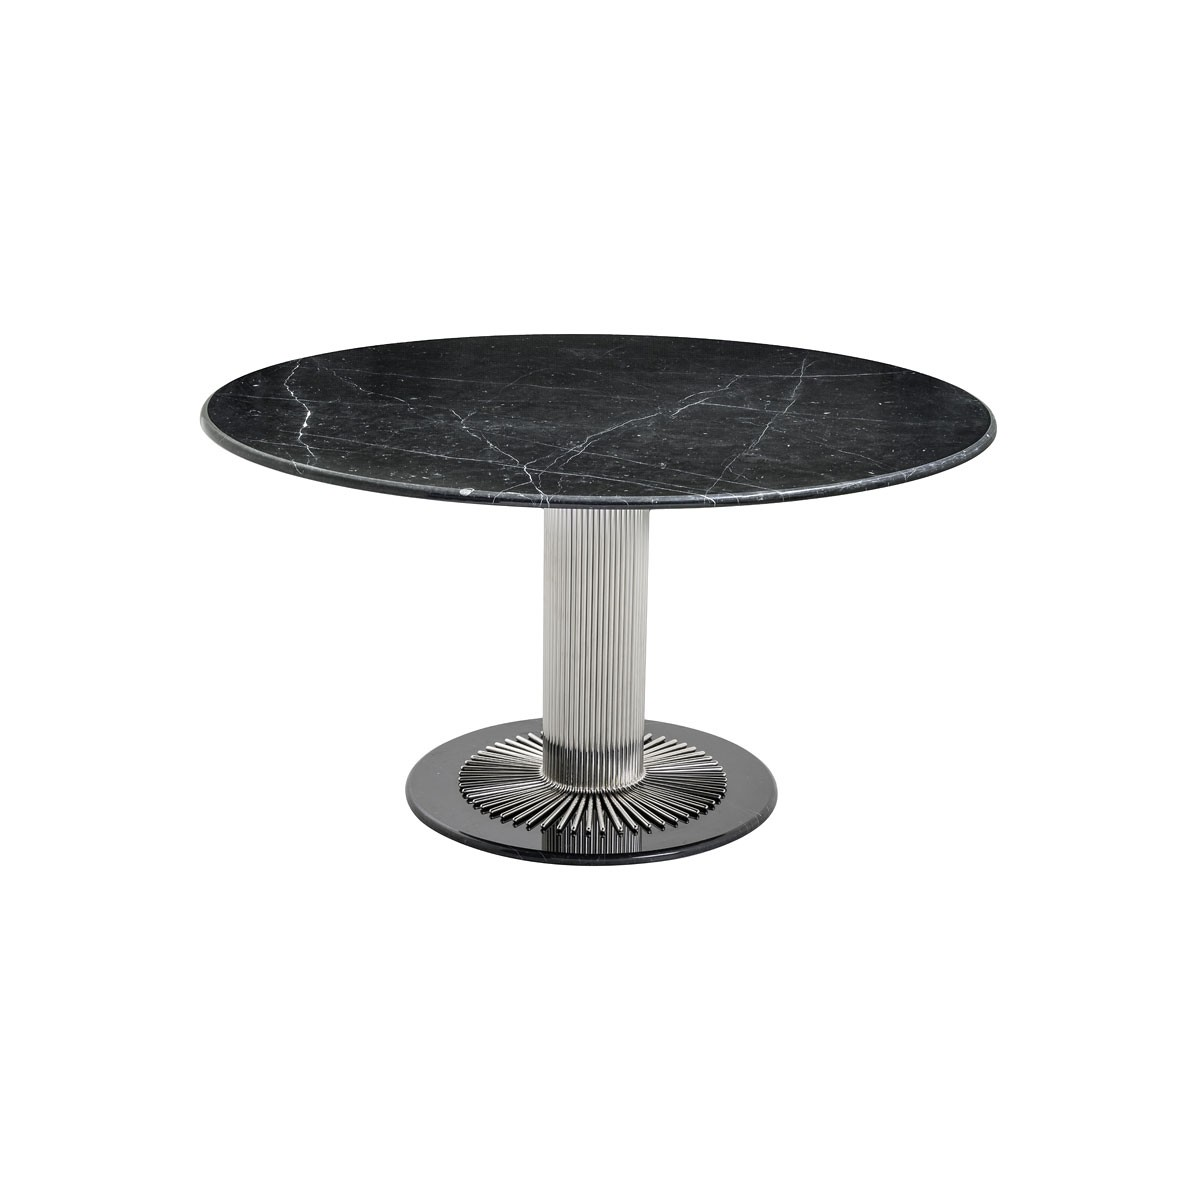 The Maria's Oval Dining Table